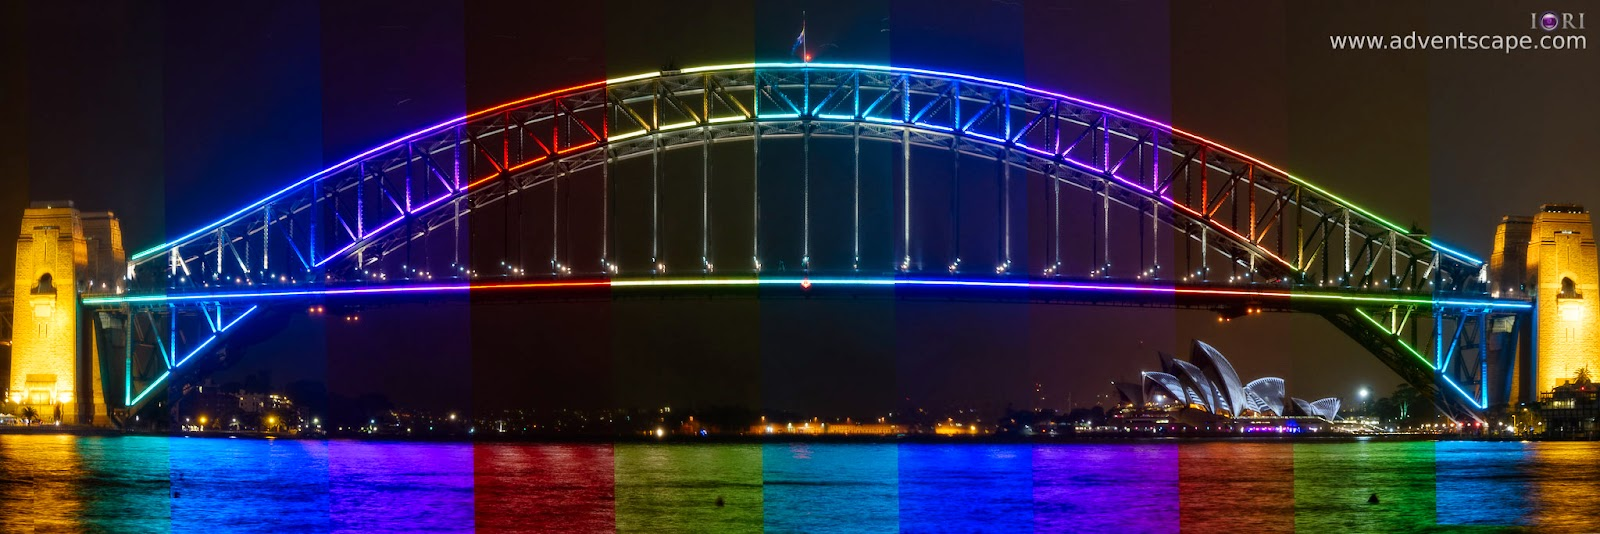 The wait for vivid sydney 2015 adventscape for Pool show 2015 sydney